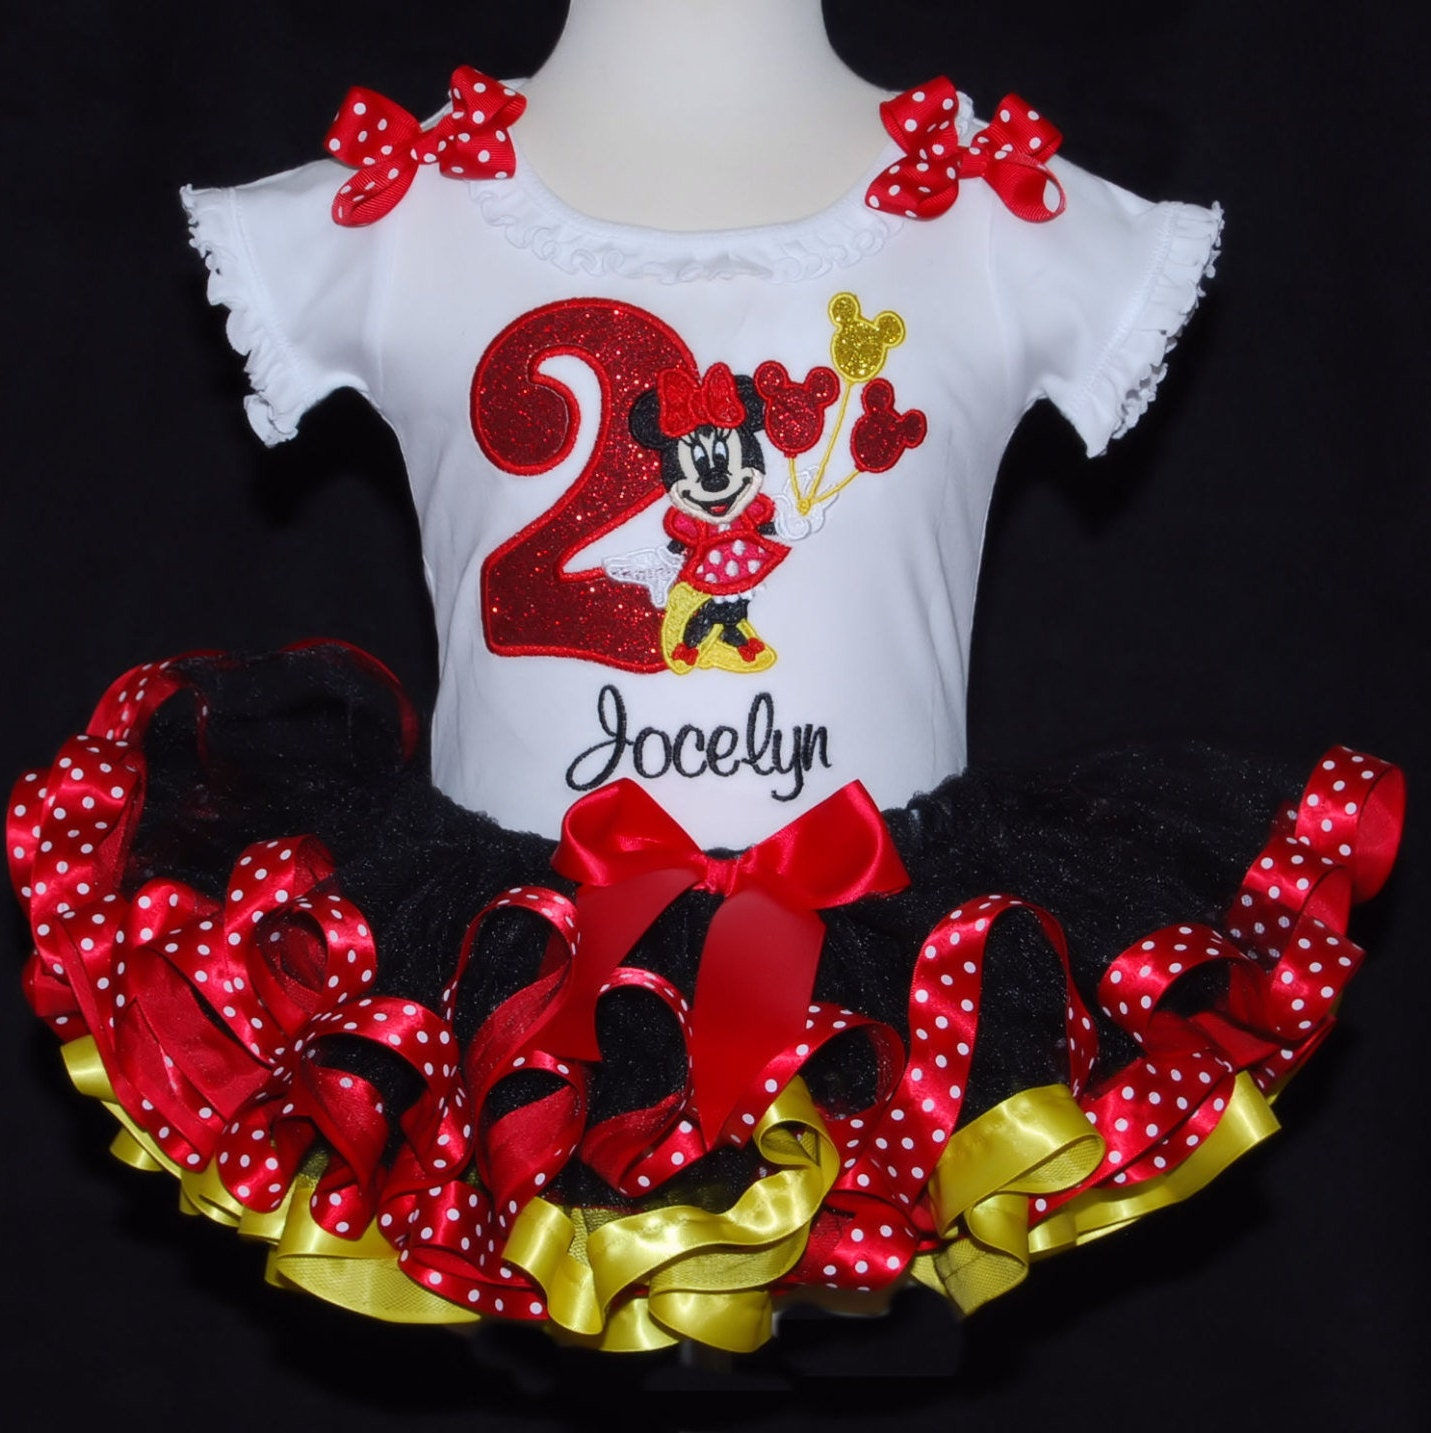 Sparkle Minnie Mouse 2nd Birthday Tutu Outfit Platinum Collection  Red, Yellow & Black 2 pieces top and tutu only